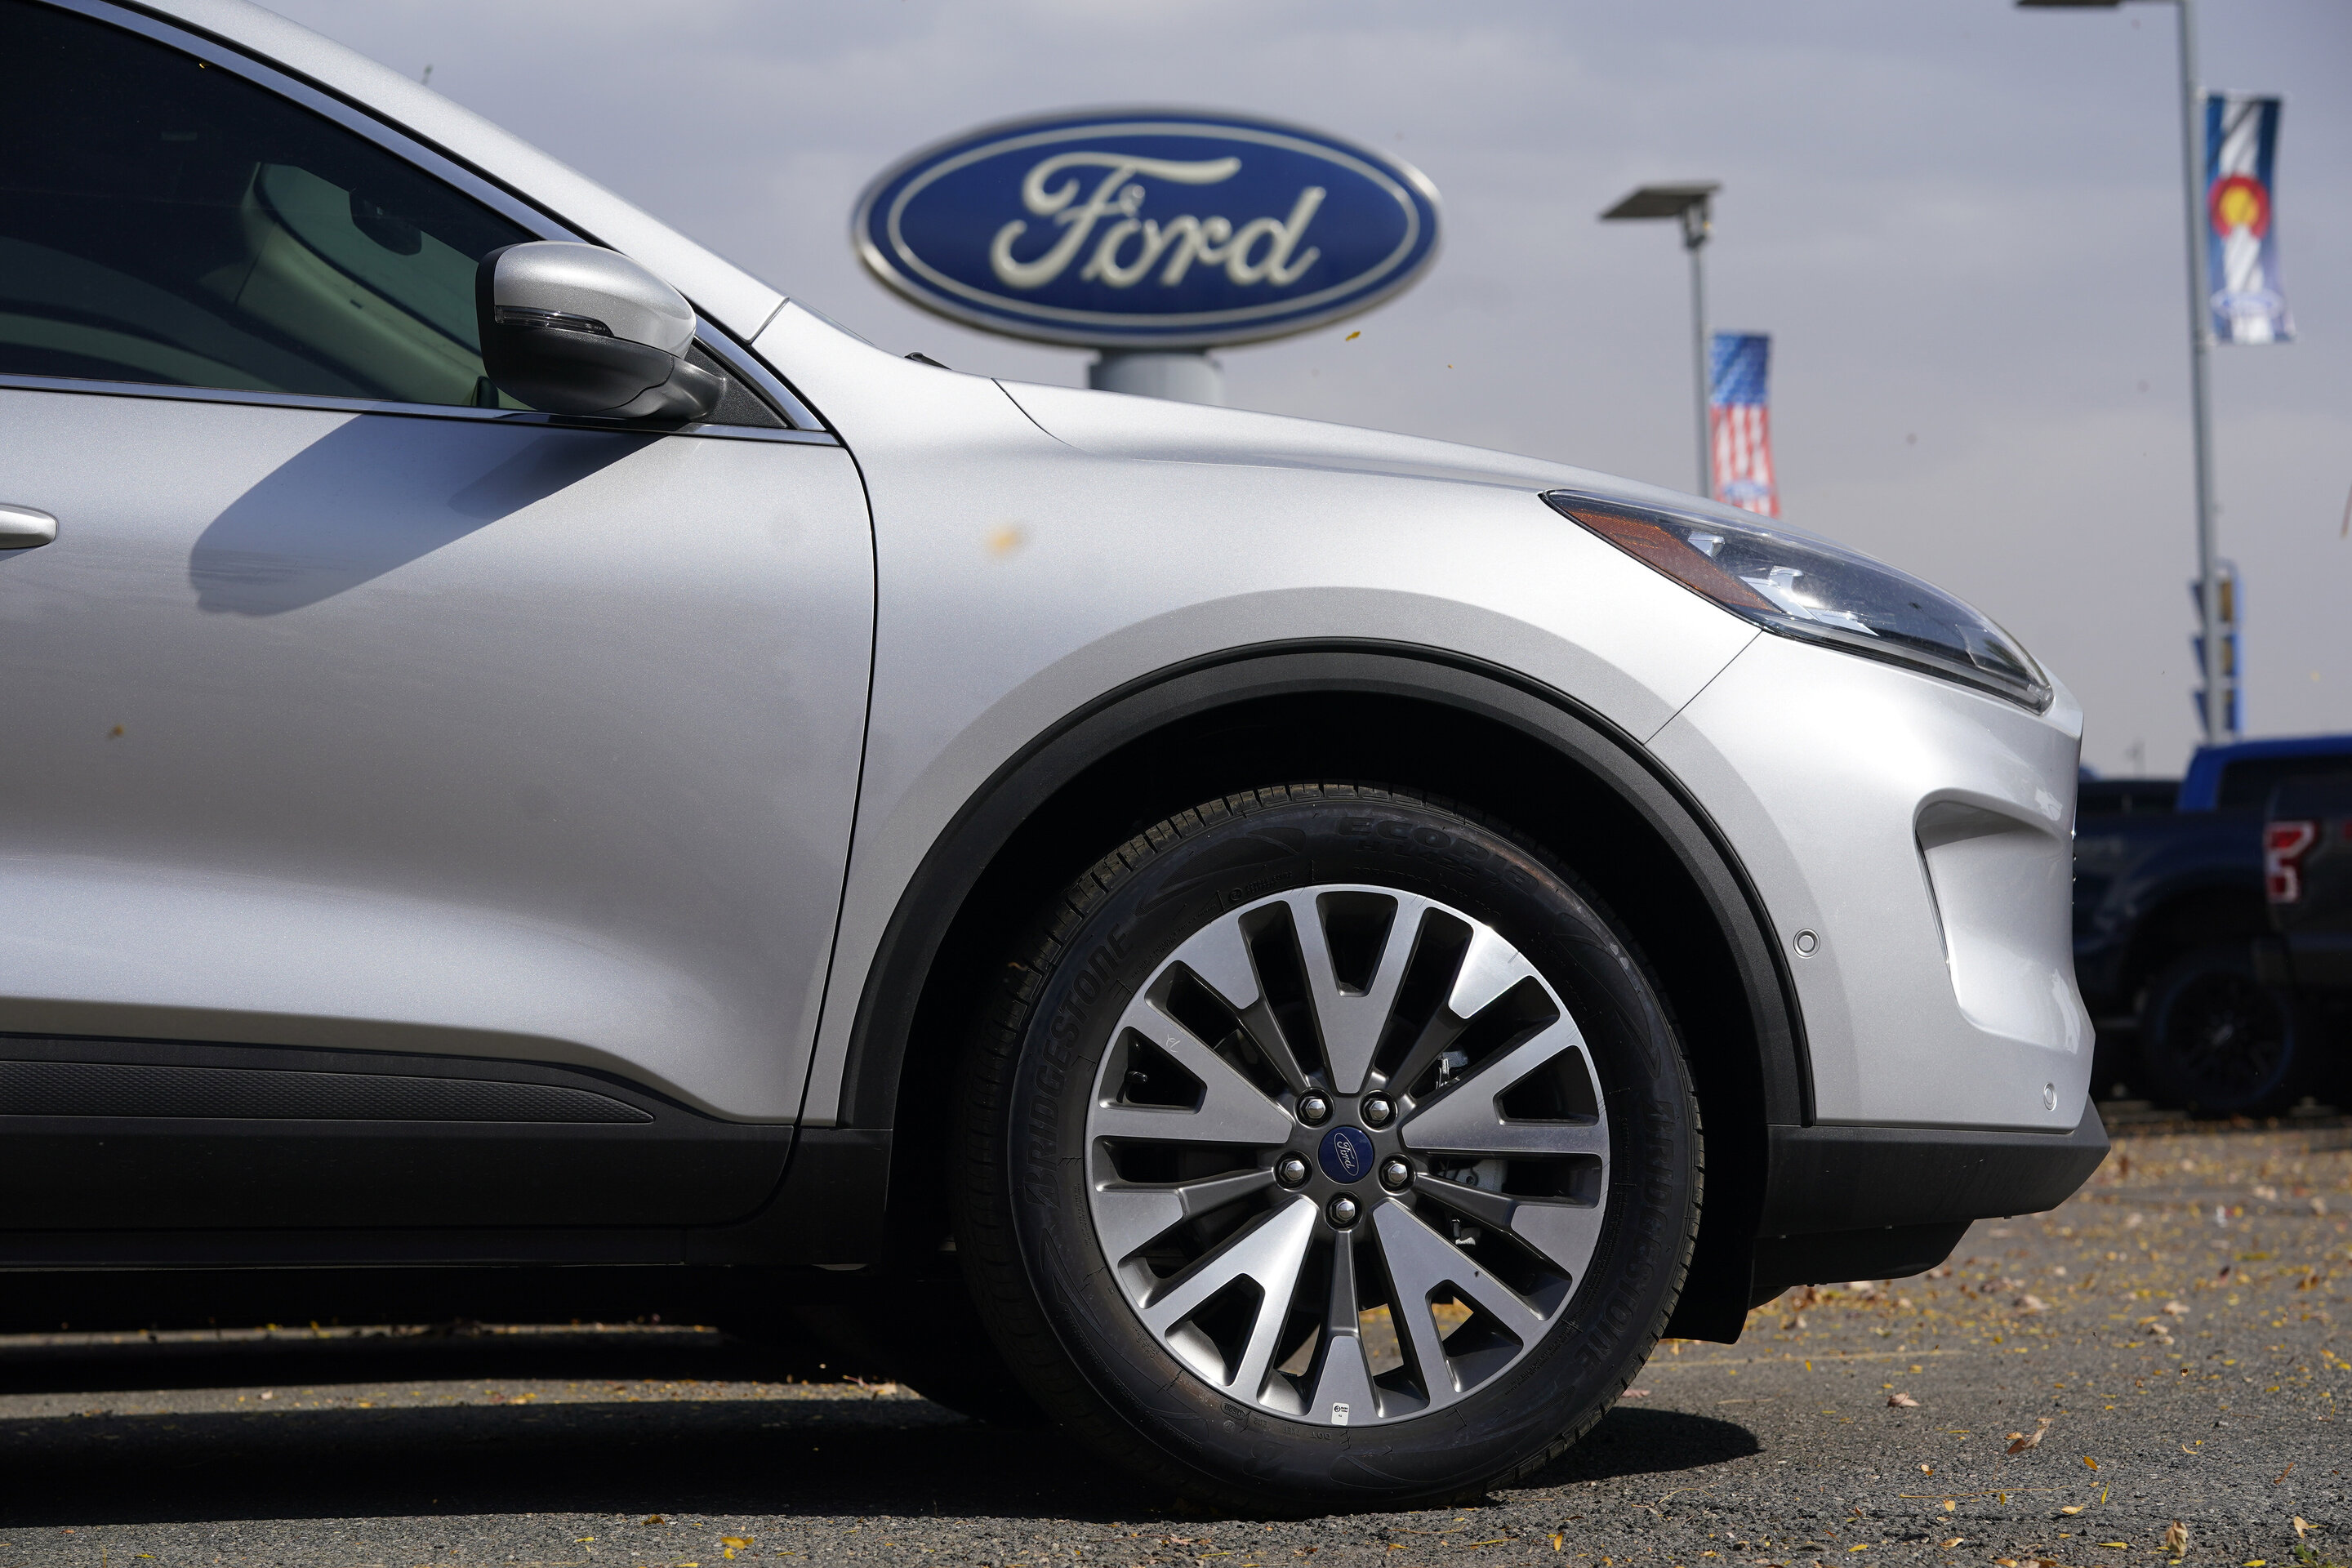 Post-Pandemic Effect: Ford Cutting Down Production Volume